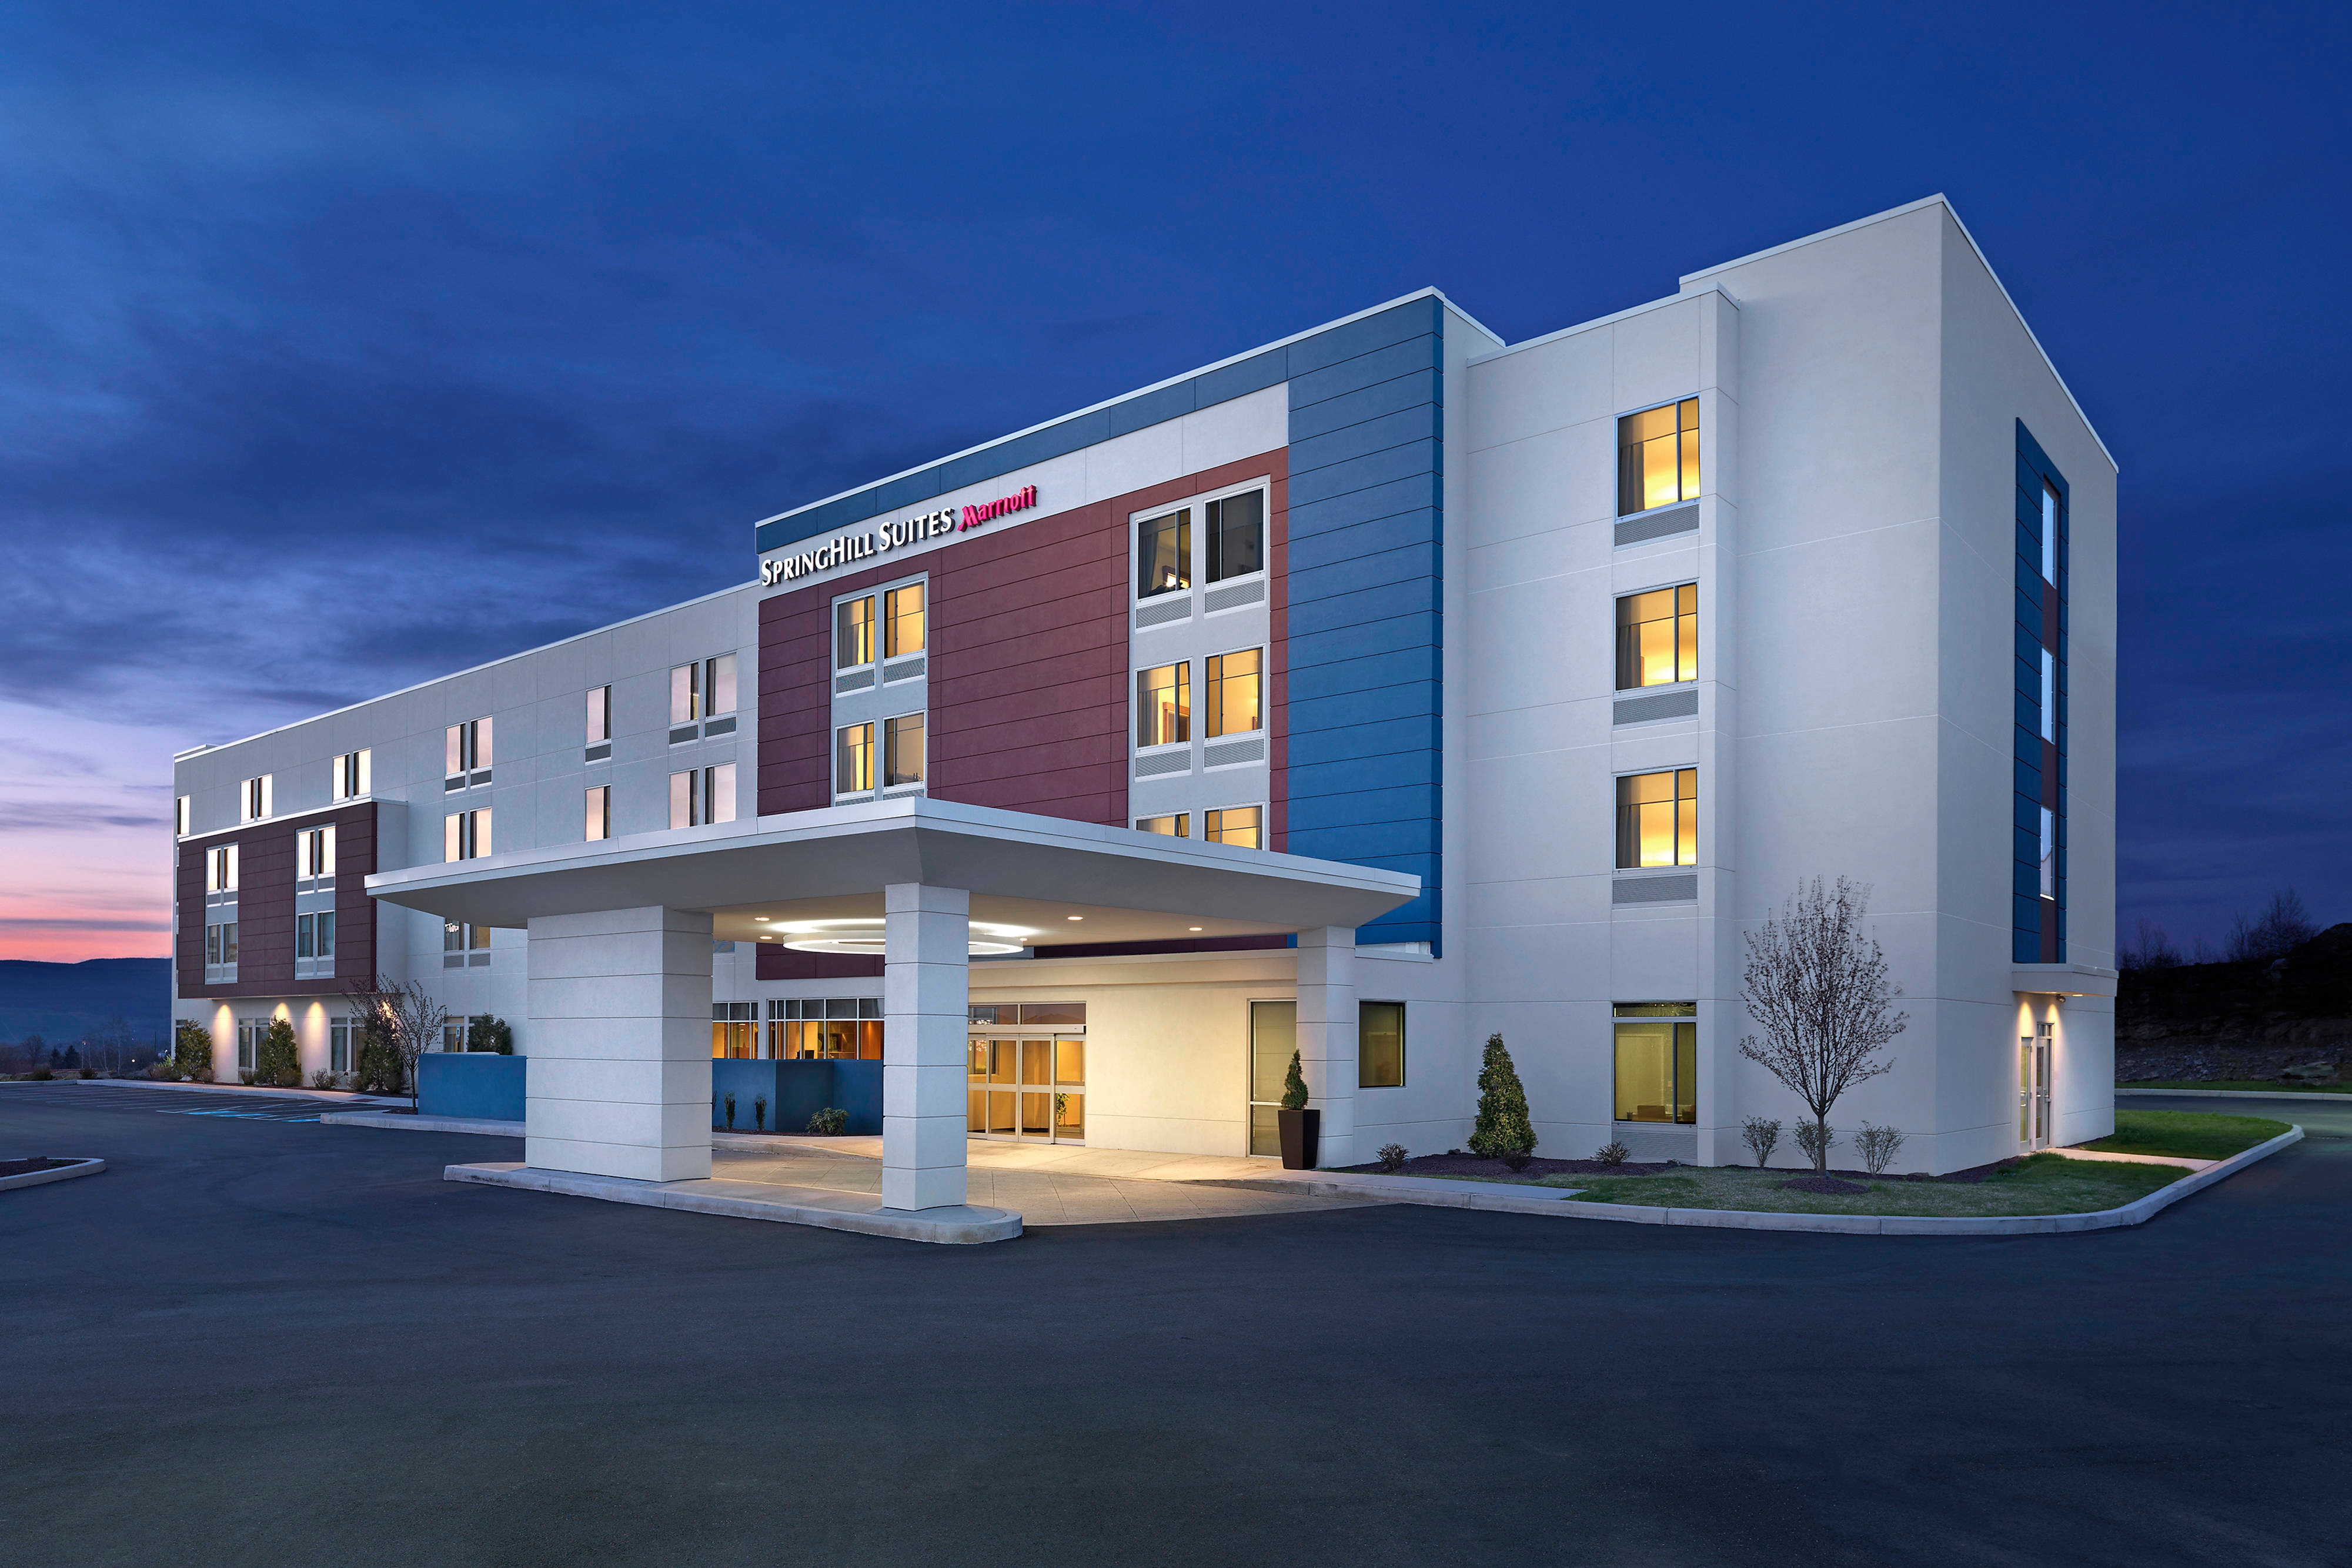 SpringHill Suites Hotel